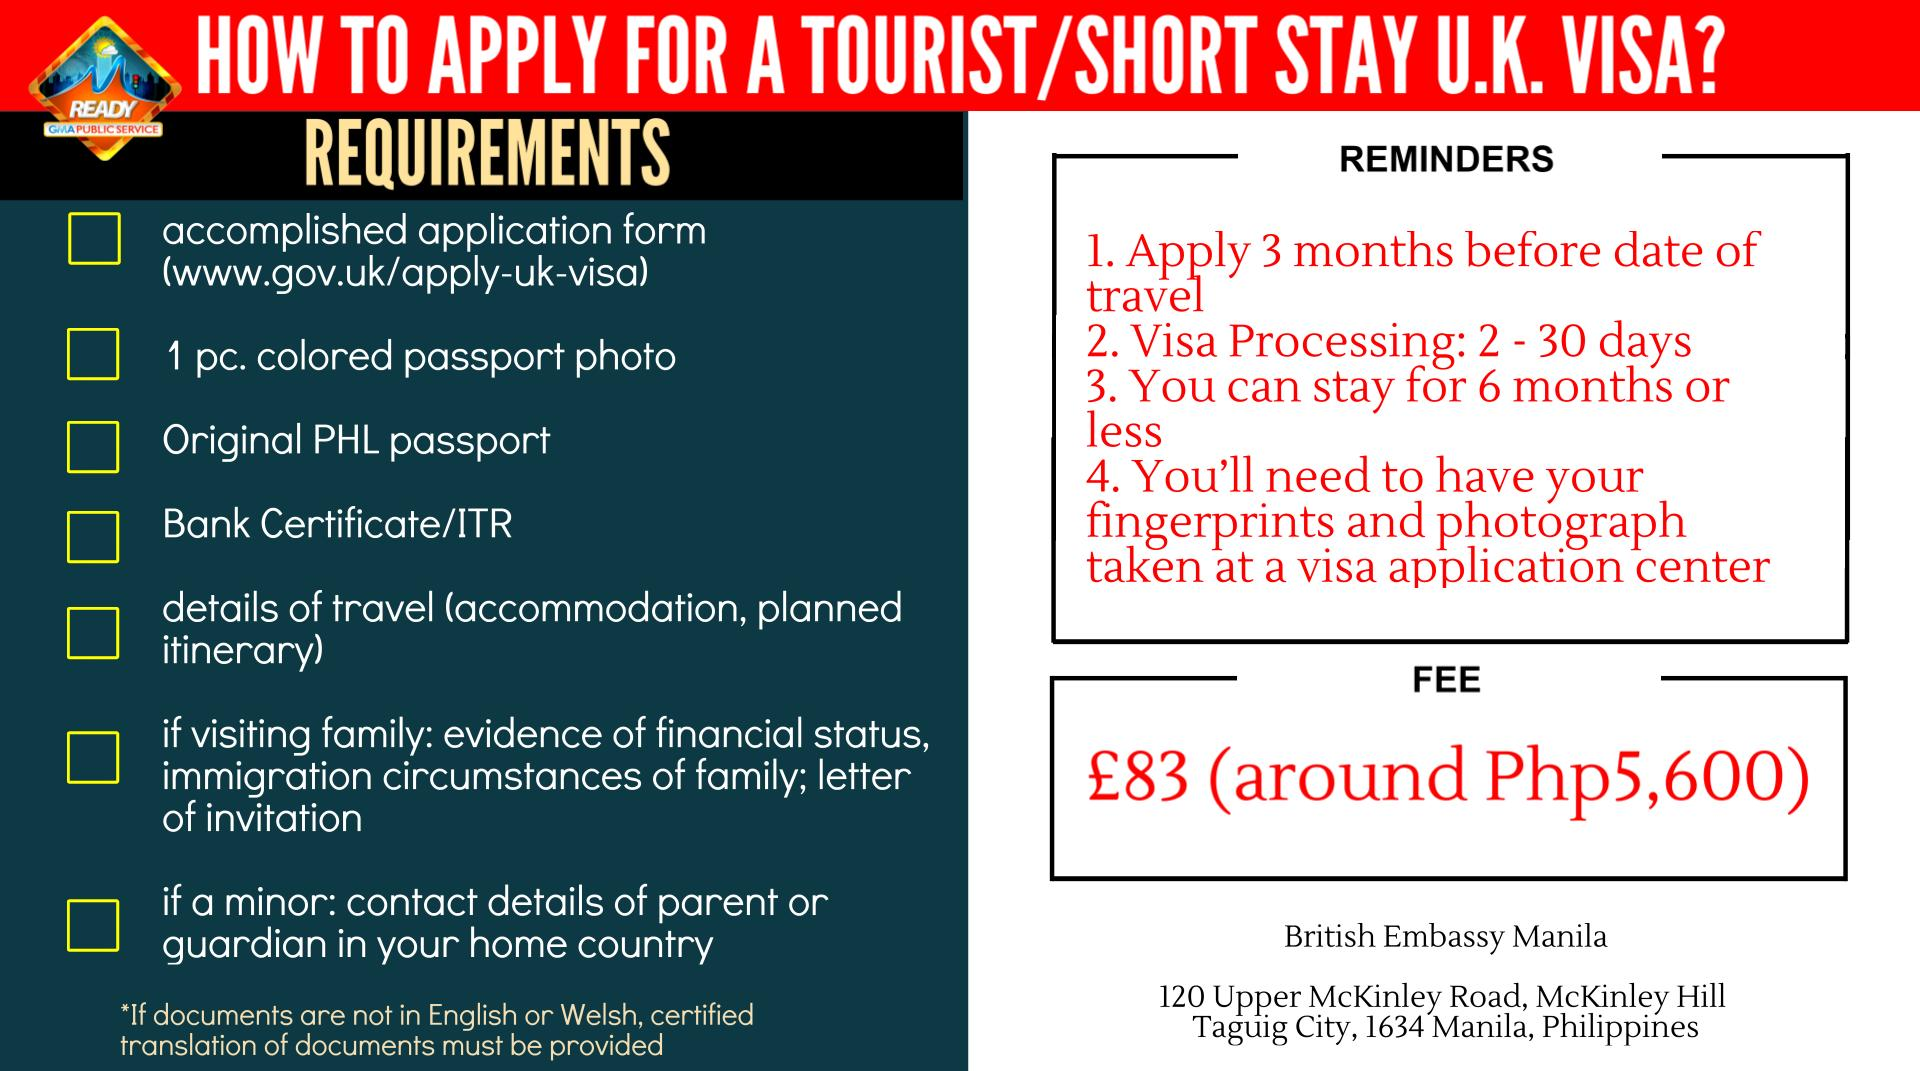 How To Apply For A Short Stay Uk Visa. Local Business Listings For Sale. Bail Bonds Minneapolis North Caroline Beaches. Consultant Business Insurance. University Of Virginia Admissions Blog. Education Graphic Design Handyman Pearland Tx. Financial Planning Website Best Weed For Pain. Home Automation Dallas Hazwoper Training Utah. What Is A Cosmetologist Wendy Morgan Attorney